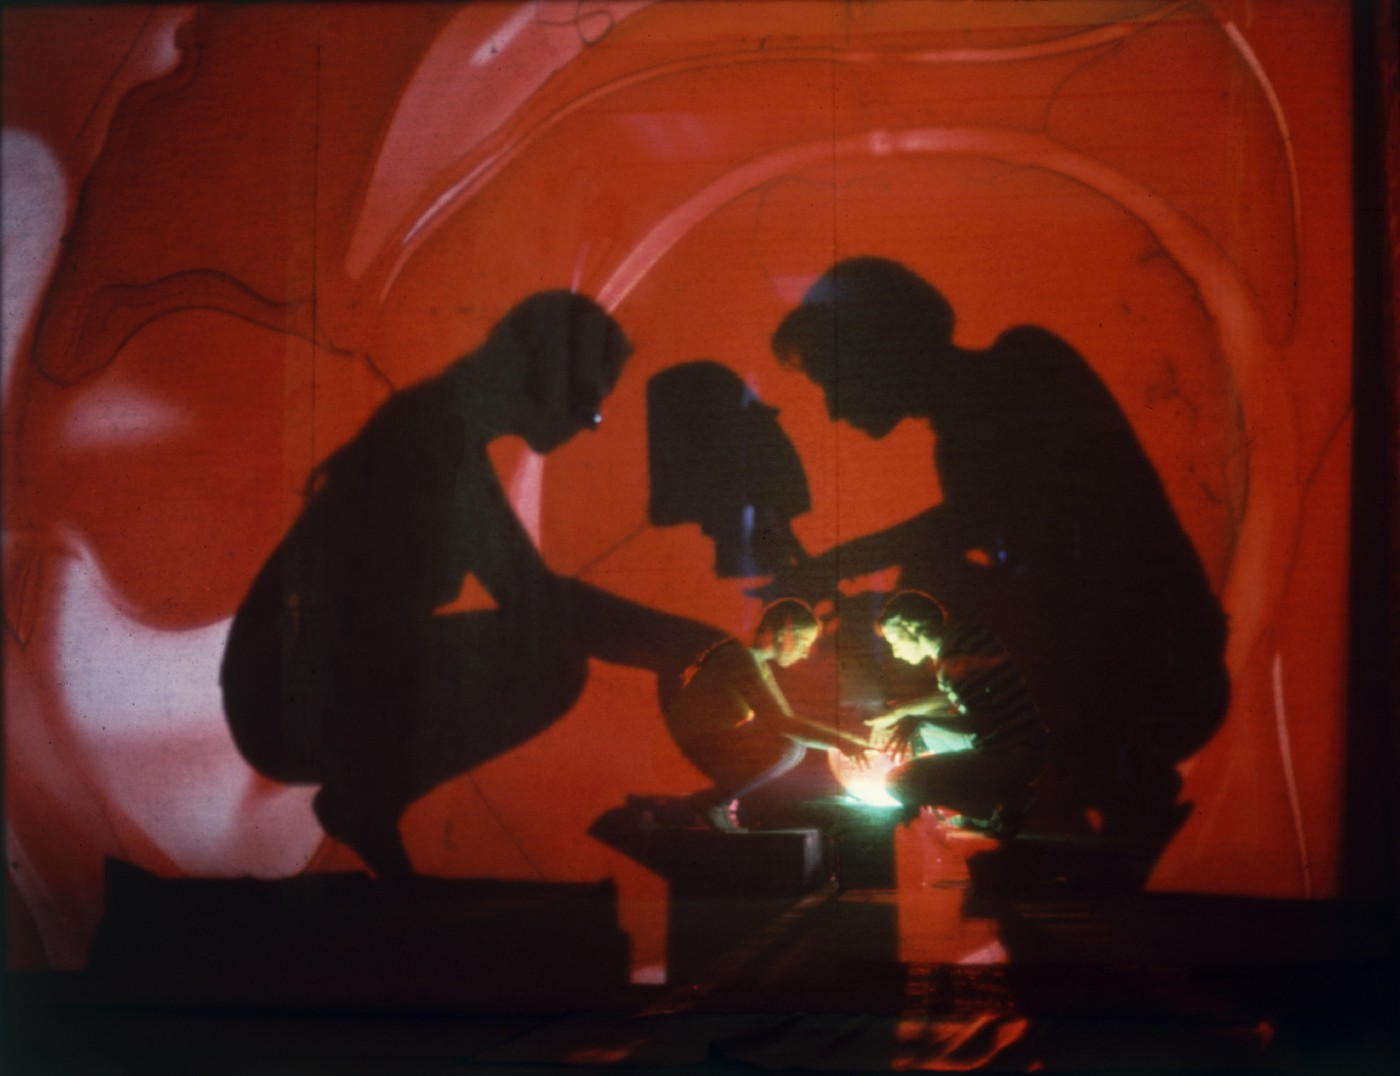 Artists Rudi Stern and Jackie Cassen operate a psychedelic slide show seminar using lights and gels at Millbrook in 1966. (Yale Joel/Life Picture Collection/Getty Images)